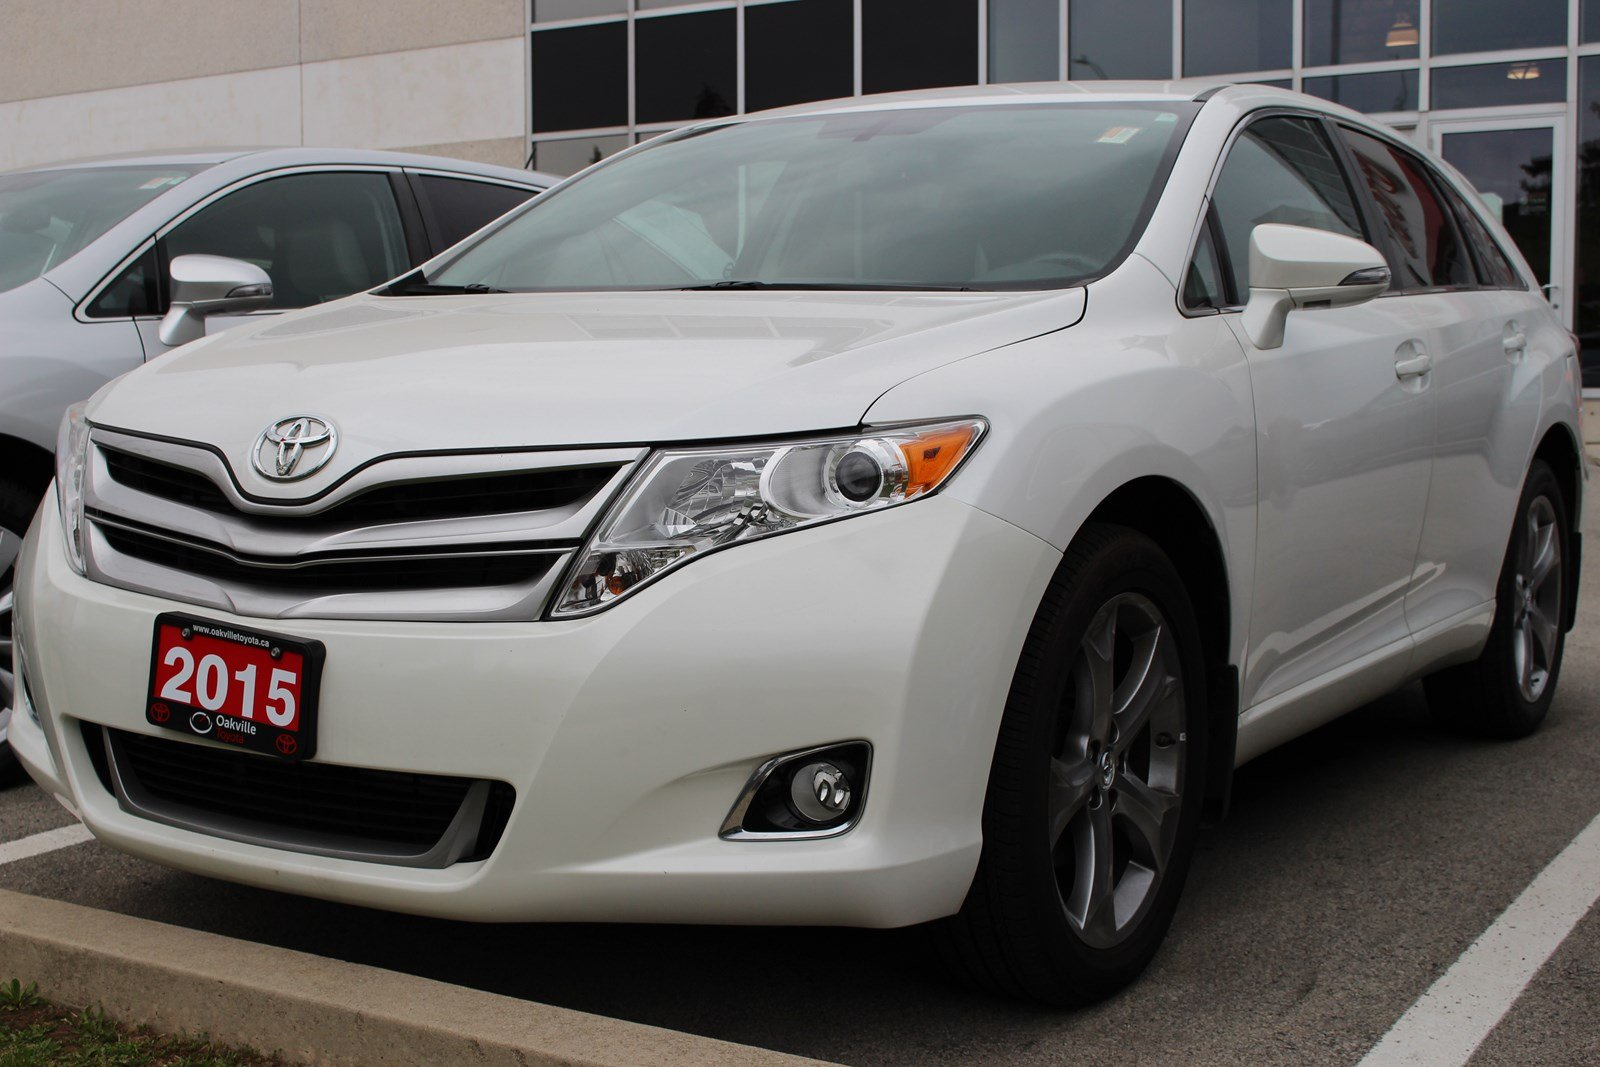 ca sale xle for venza cars in ontario toyota carpages used brampton